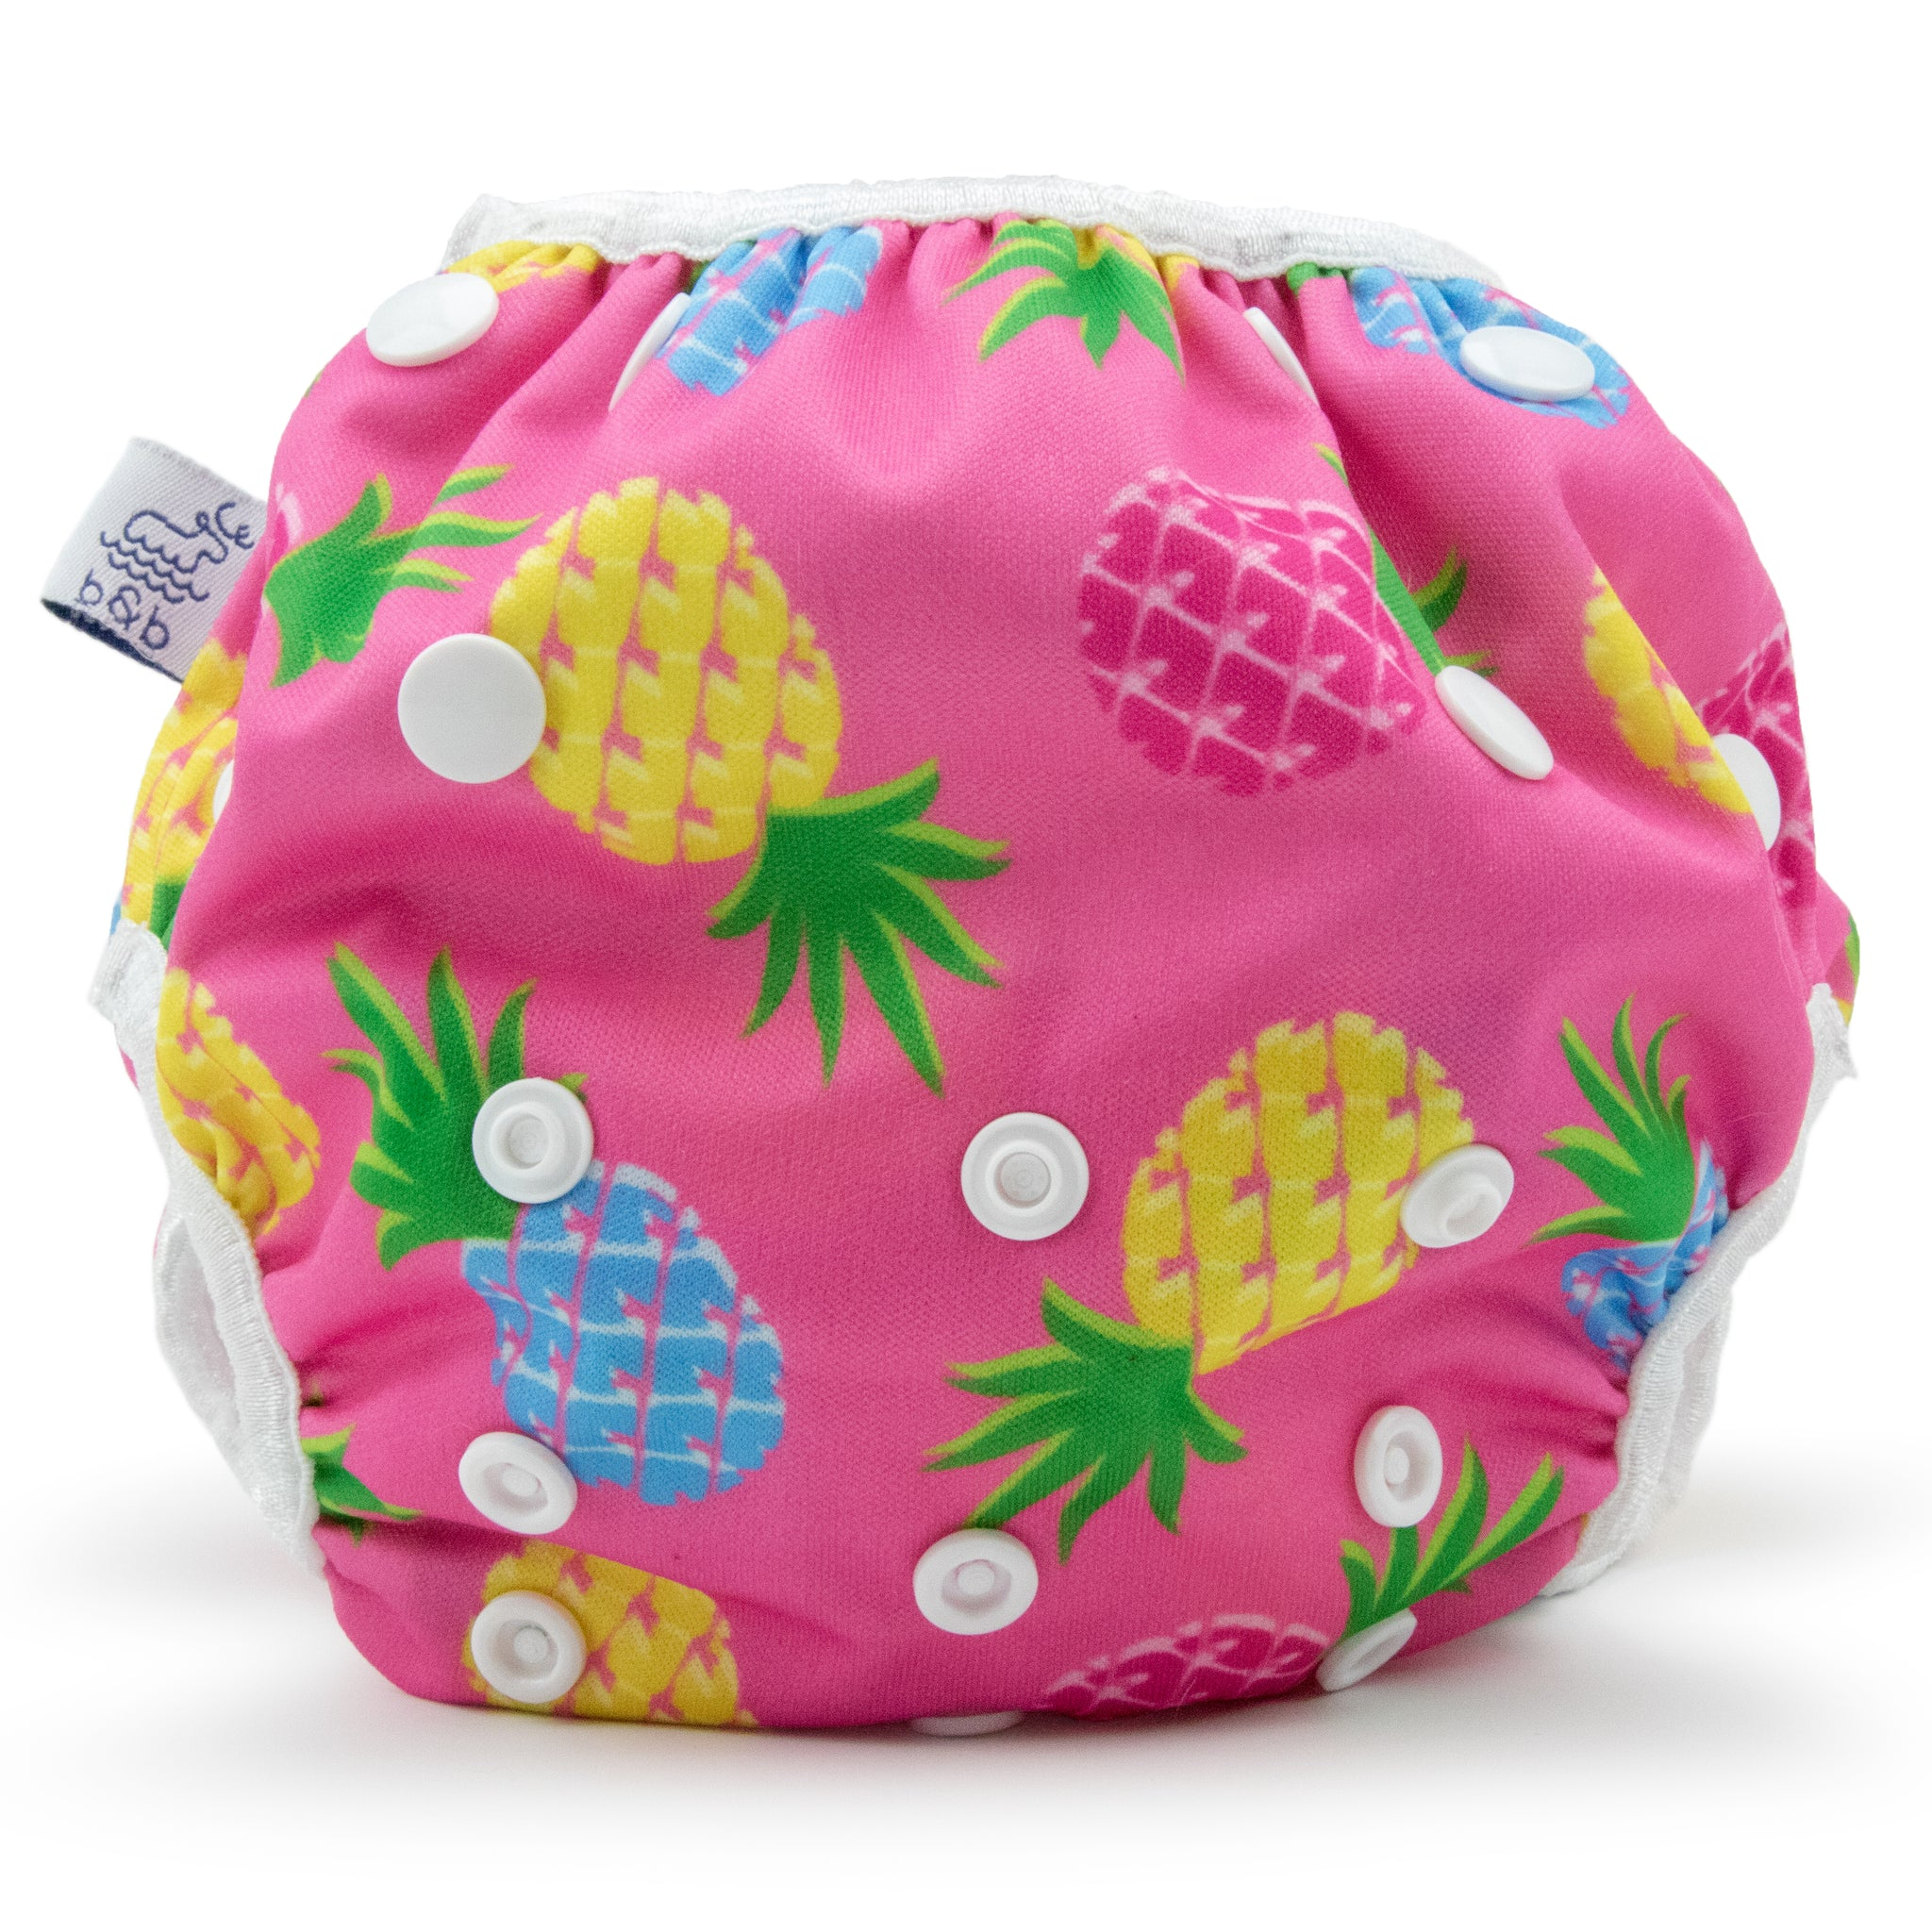 Beau and Belle Littles Swim Diaper, Large Size, light pink background with yellow, dark pink, and blue pineapples, front view